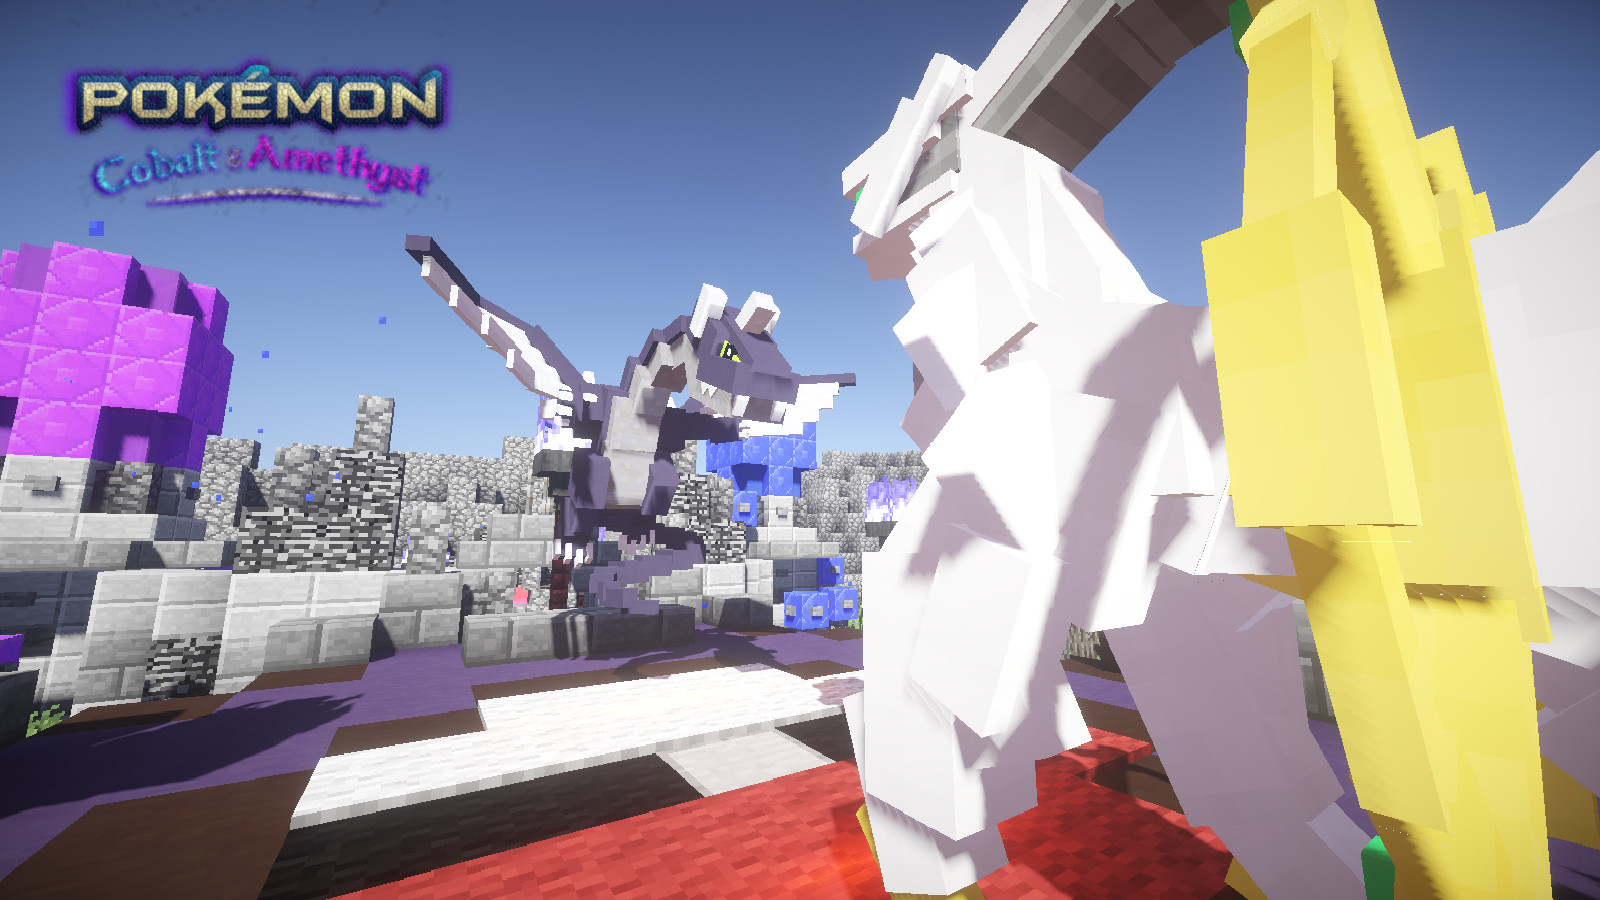 The latest must-play Pokémon game? This Minecraft map